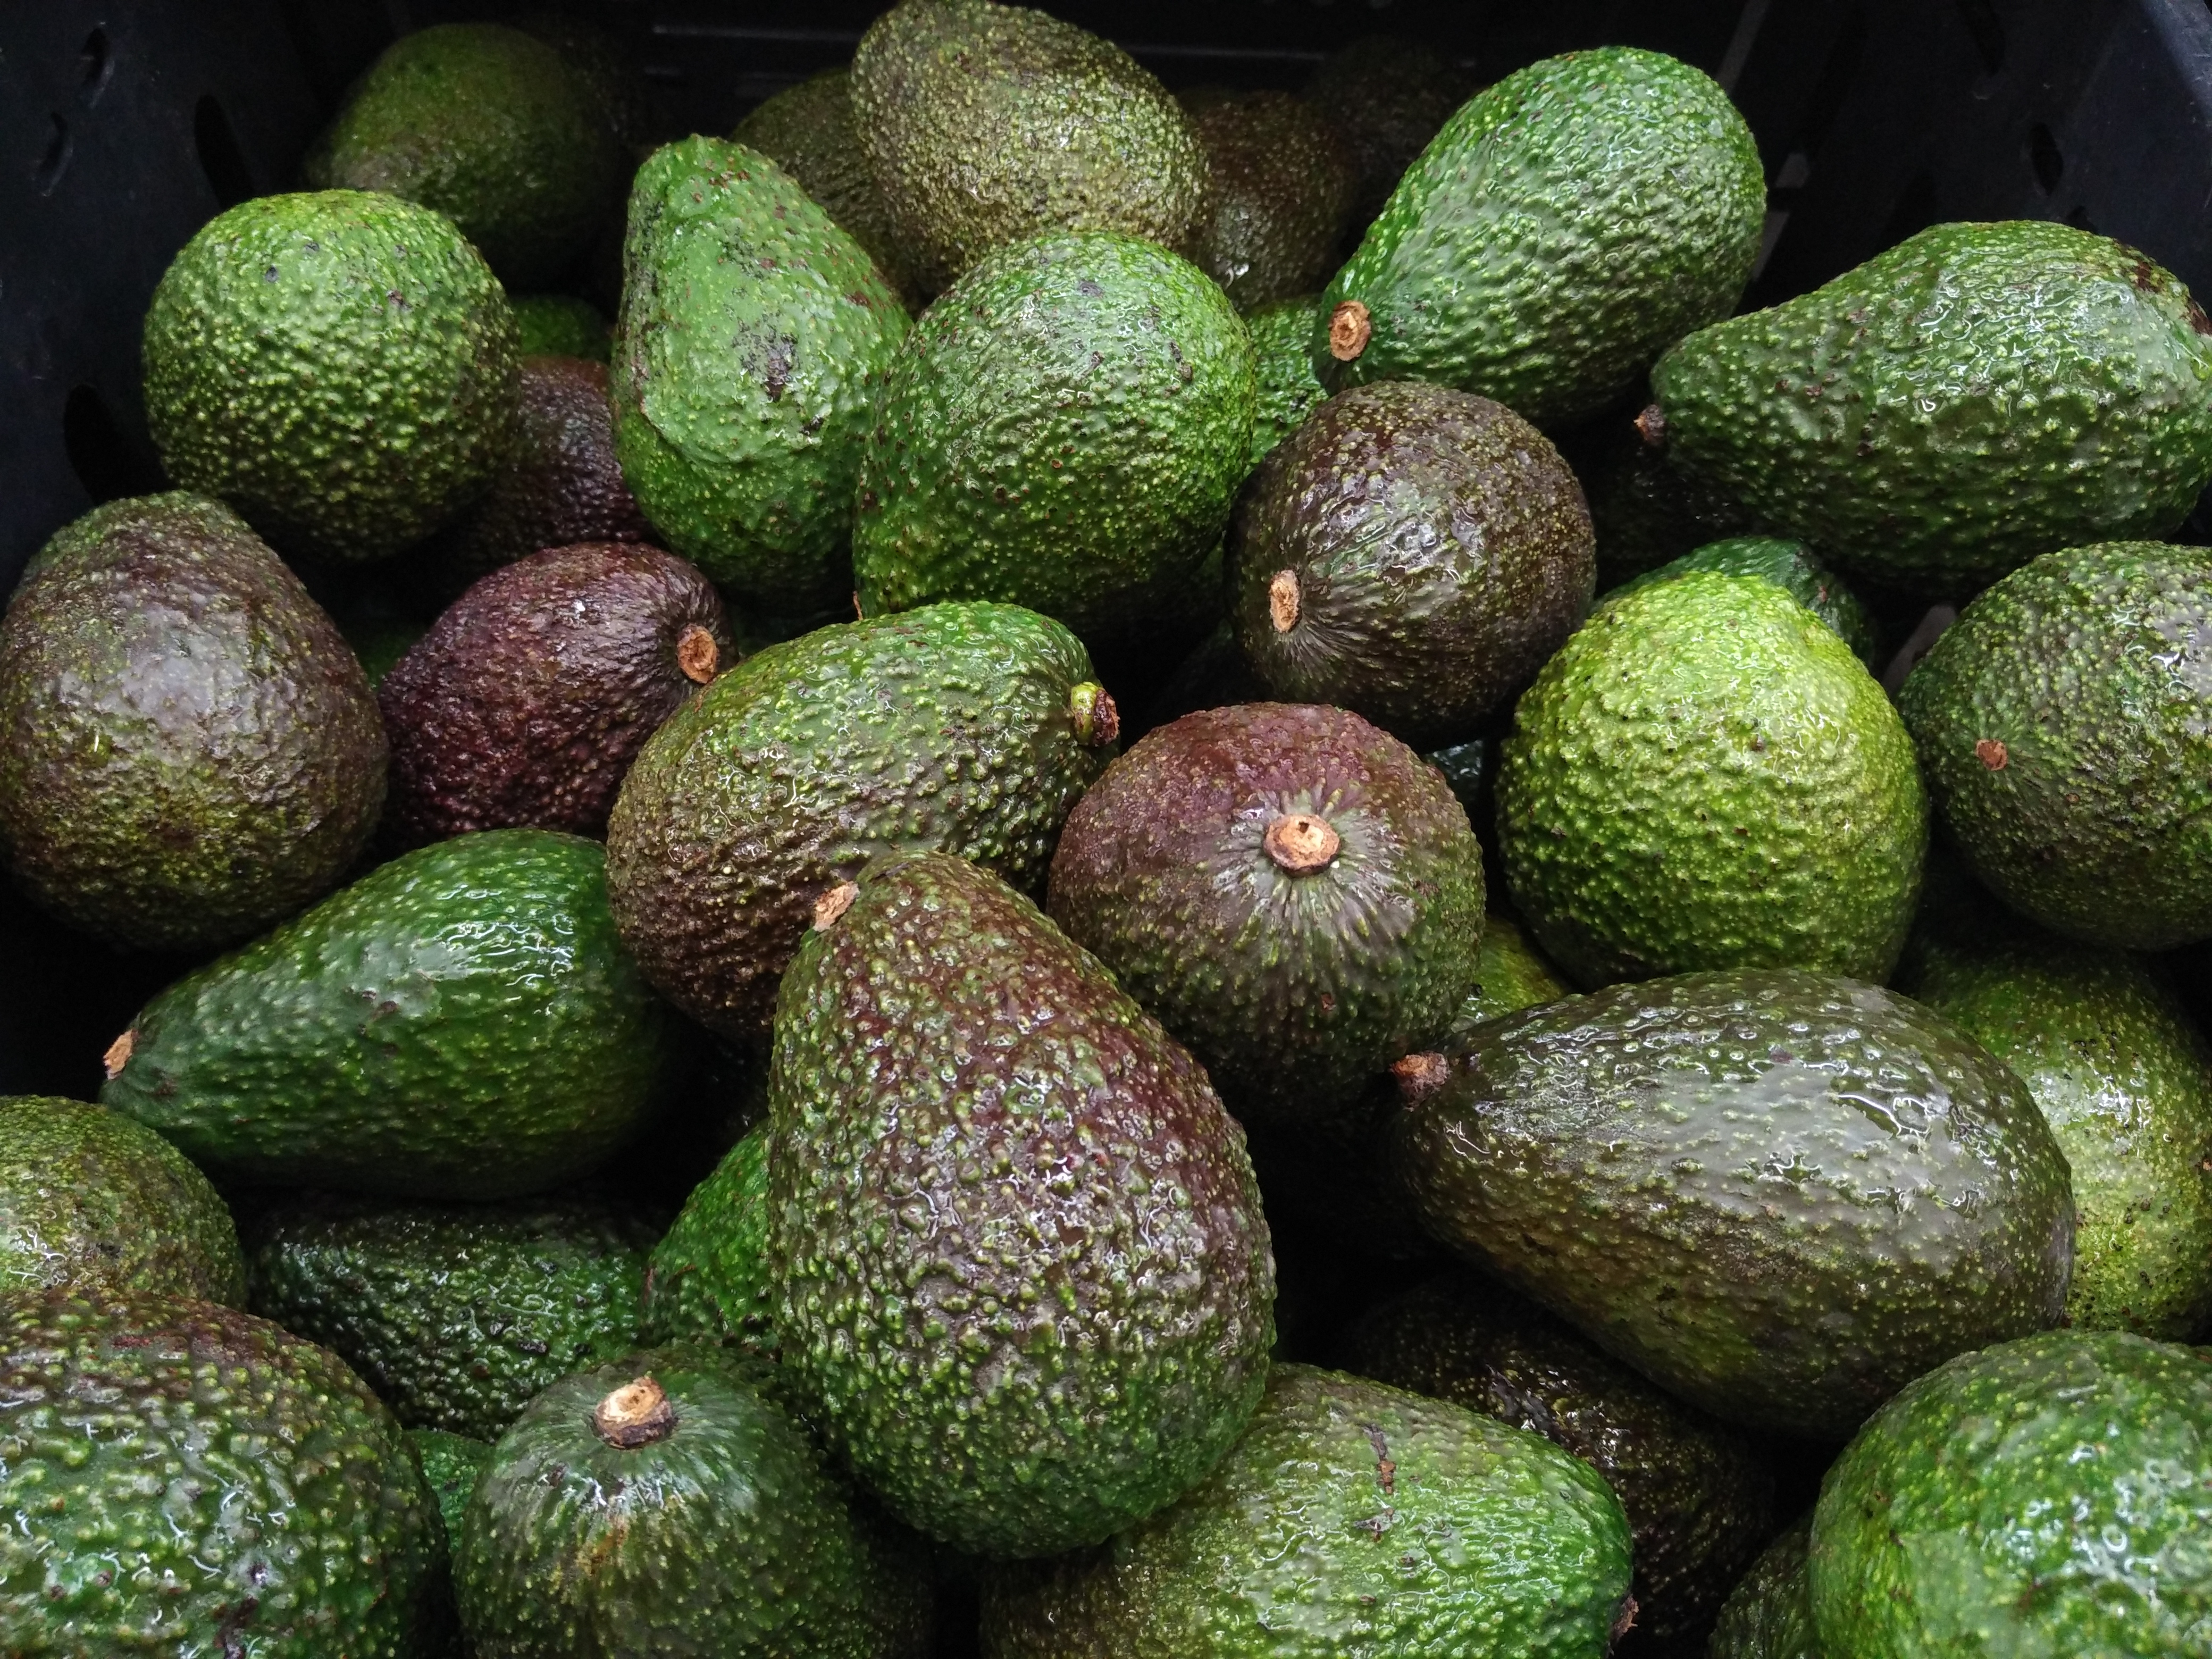 Costco is selling new avocados that last way longer than those regular old avos